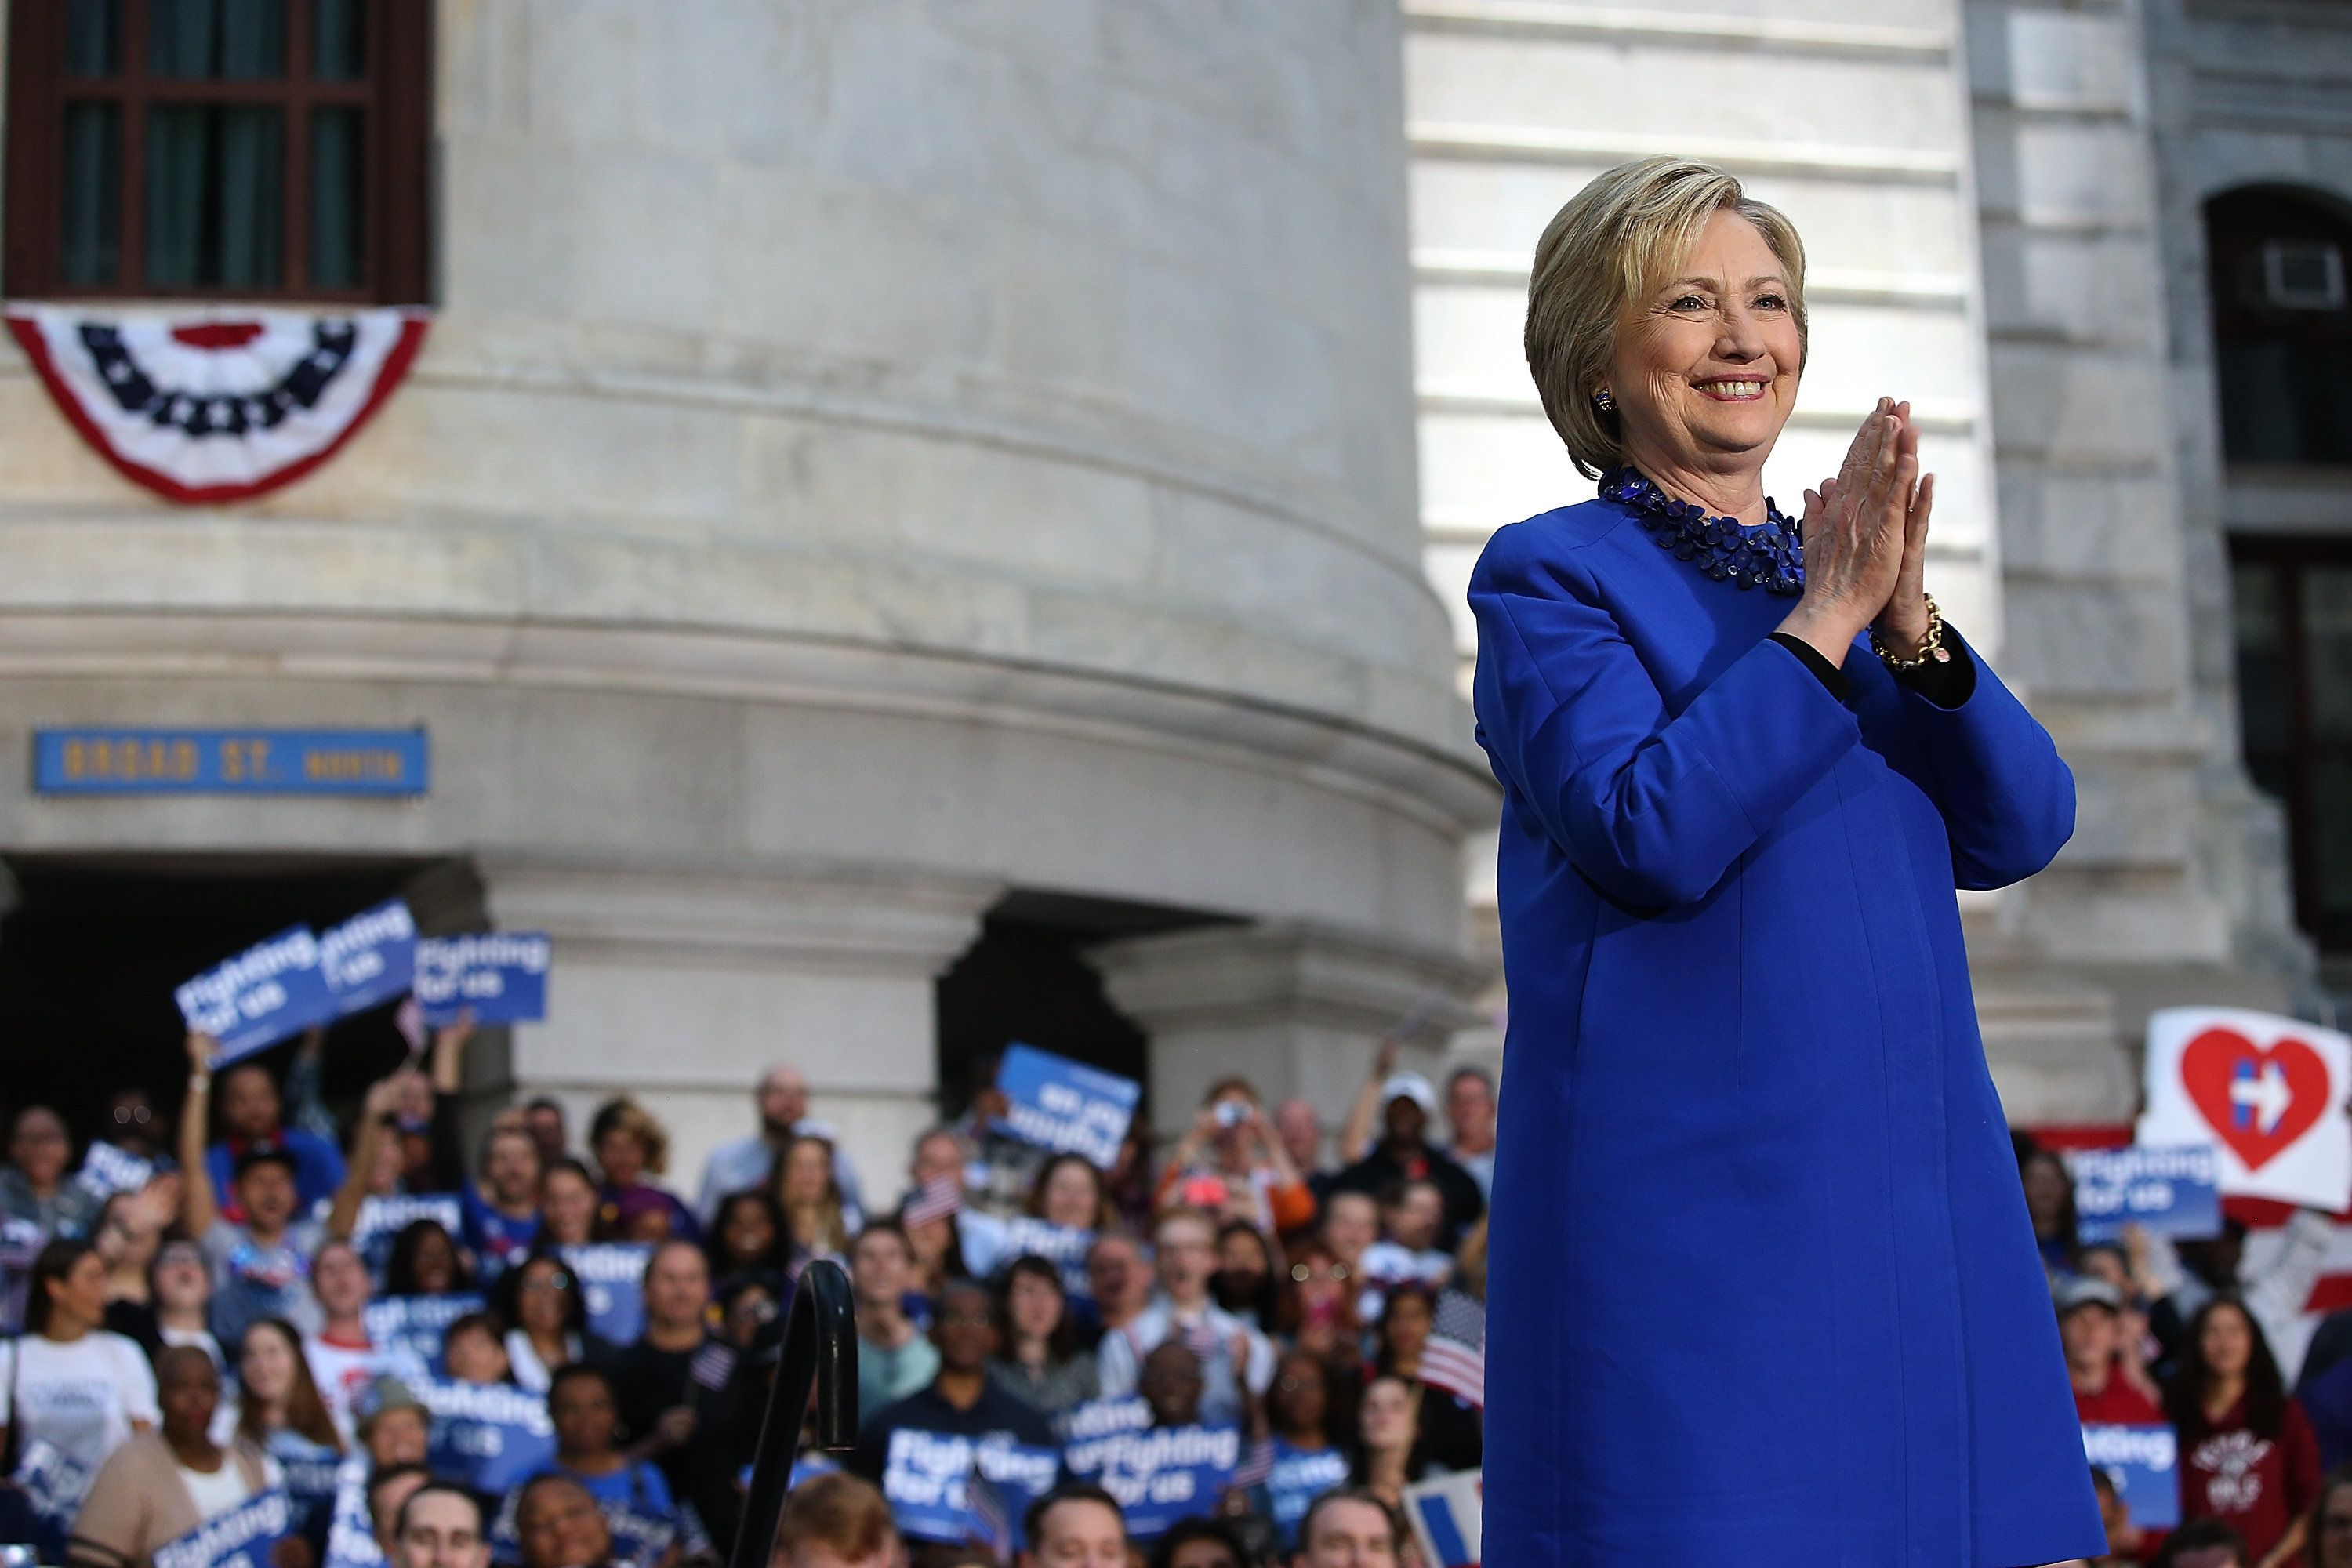 PHILADELPHIA, PA - APRIL 25:  Democratic presidential candidate former Secretary of State Hillary Clinton greets supporters during a Get Out the Vote rally at Philadelphia City Hall on April 25, 2016 in Philadelphia, Pennsylvania. Hillary Clinton is campaigning in Deleware and Pennsylvania ahead of Tuesday's presidential primaries.  (Photo by Justin Sullivan/Getty Images)